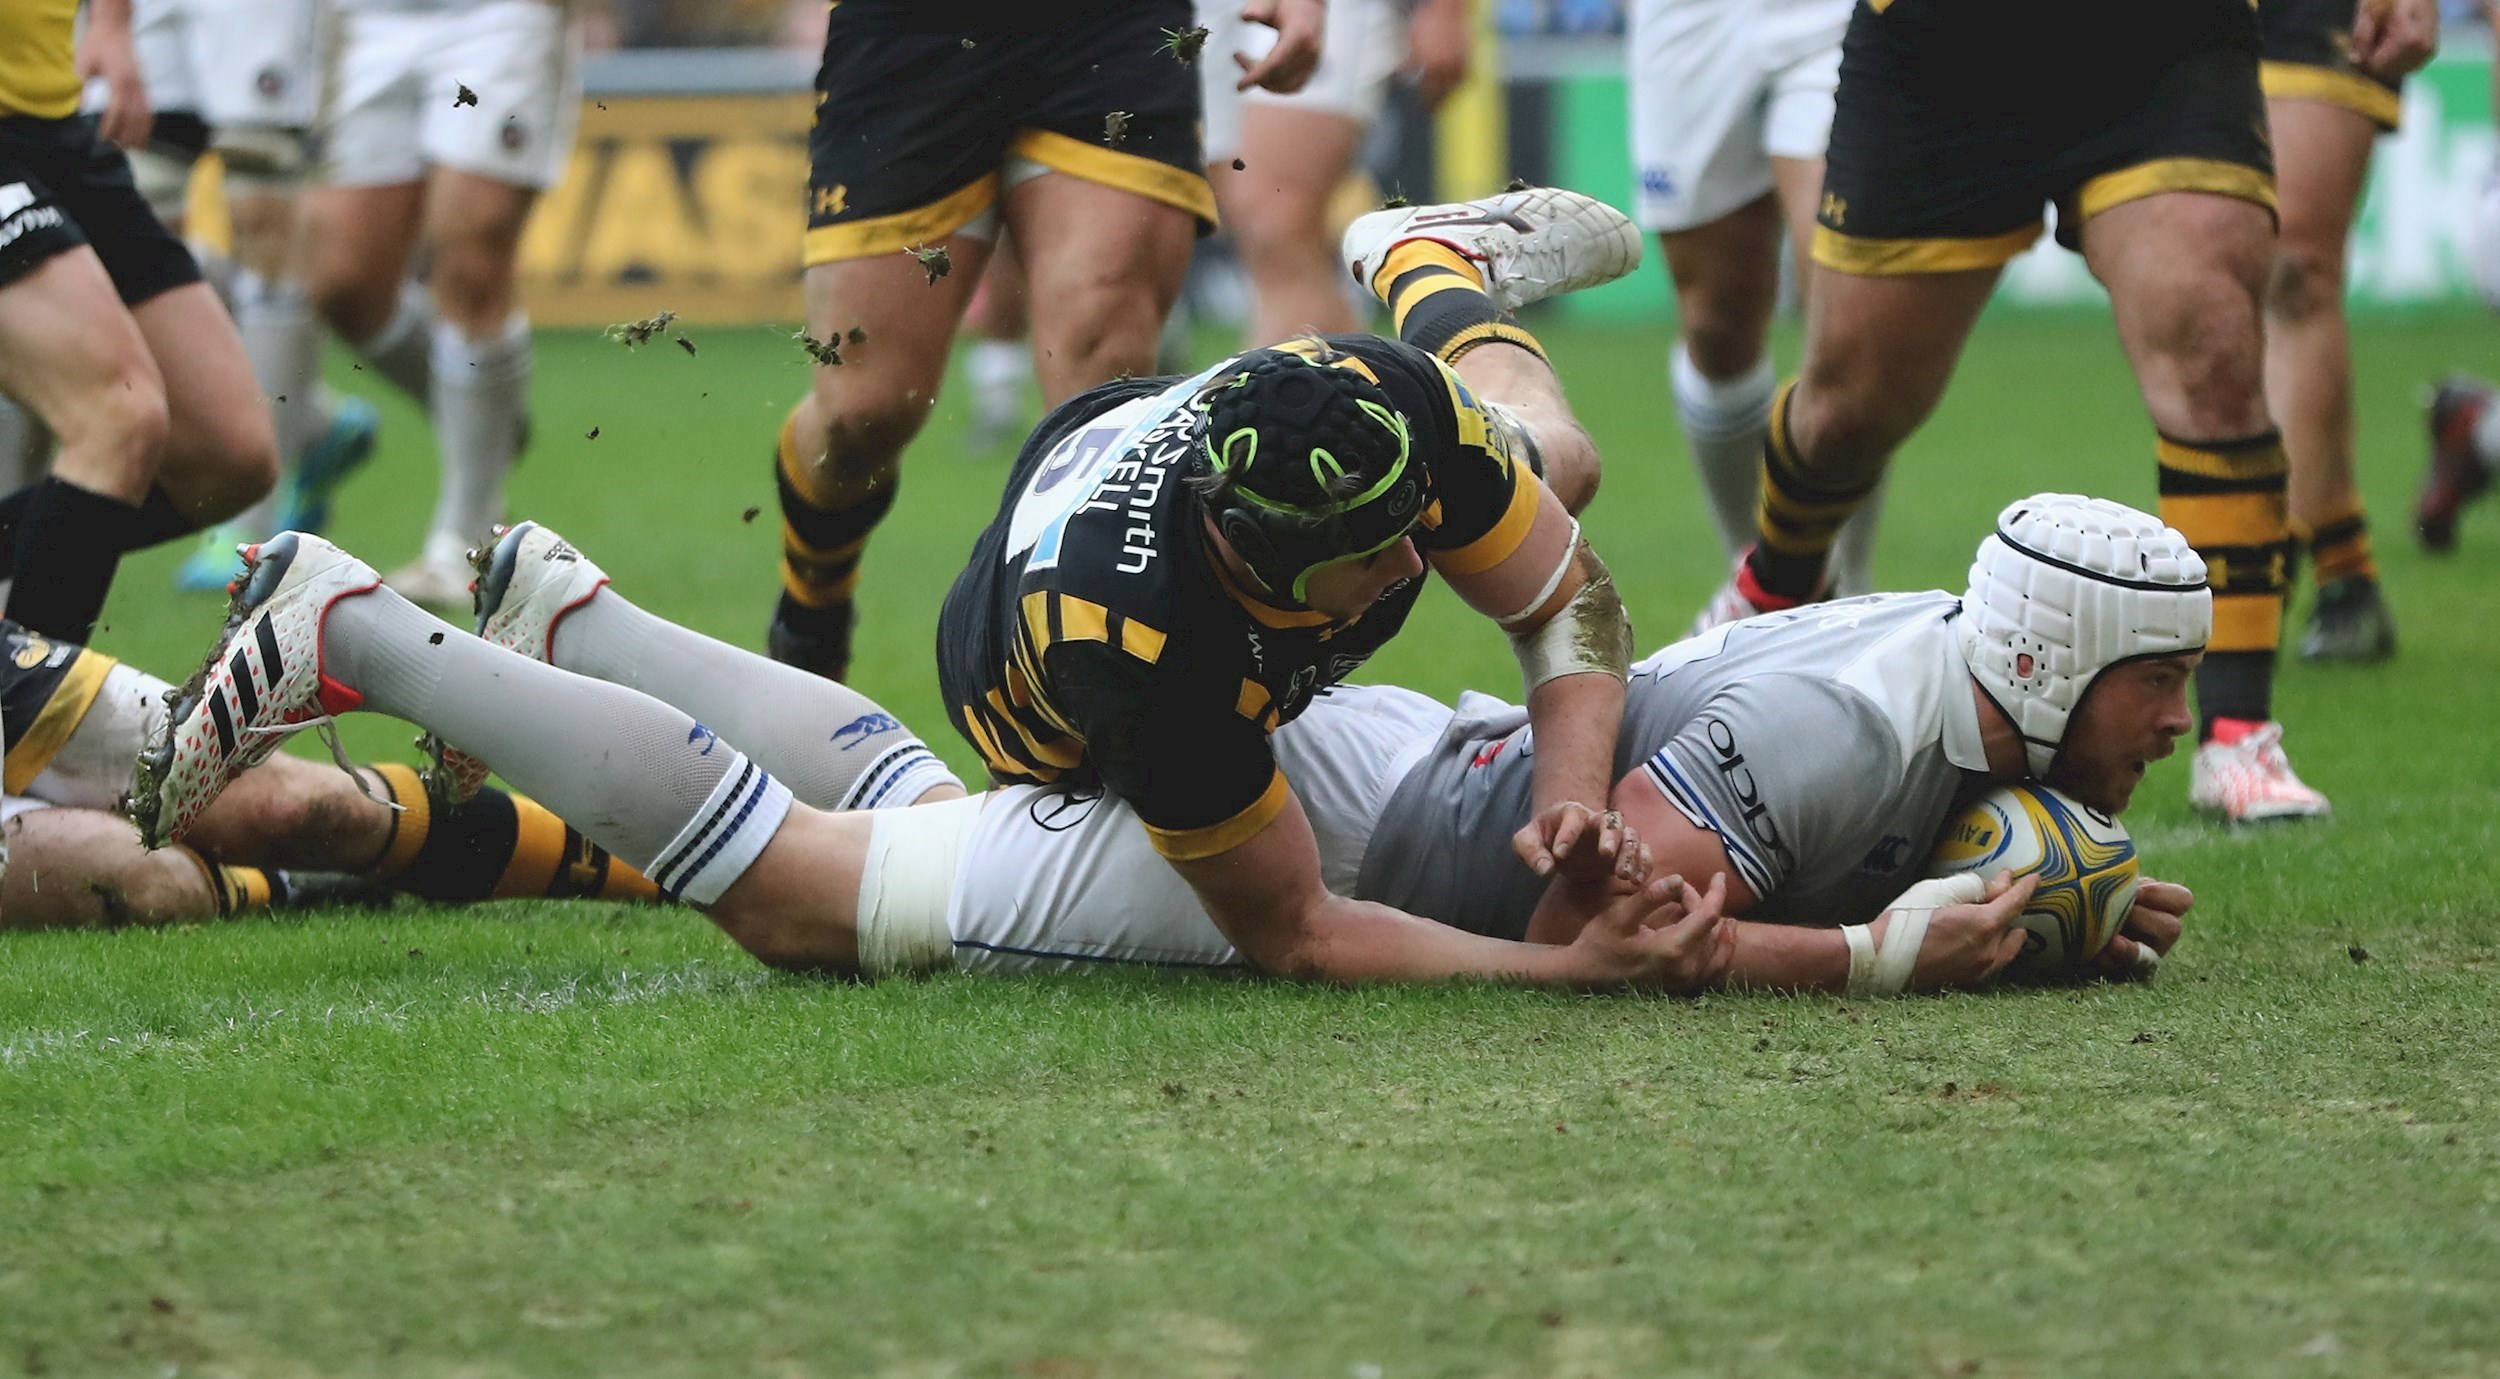 Bath Rugby fall to Wasps but secure try bonus point